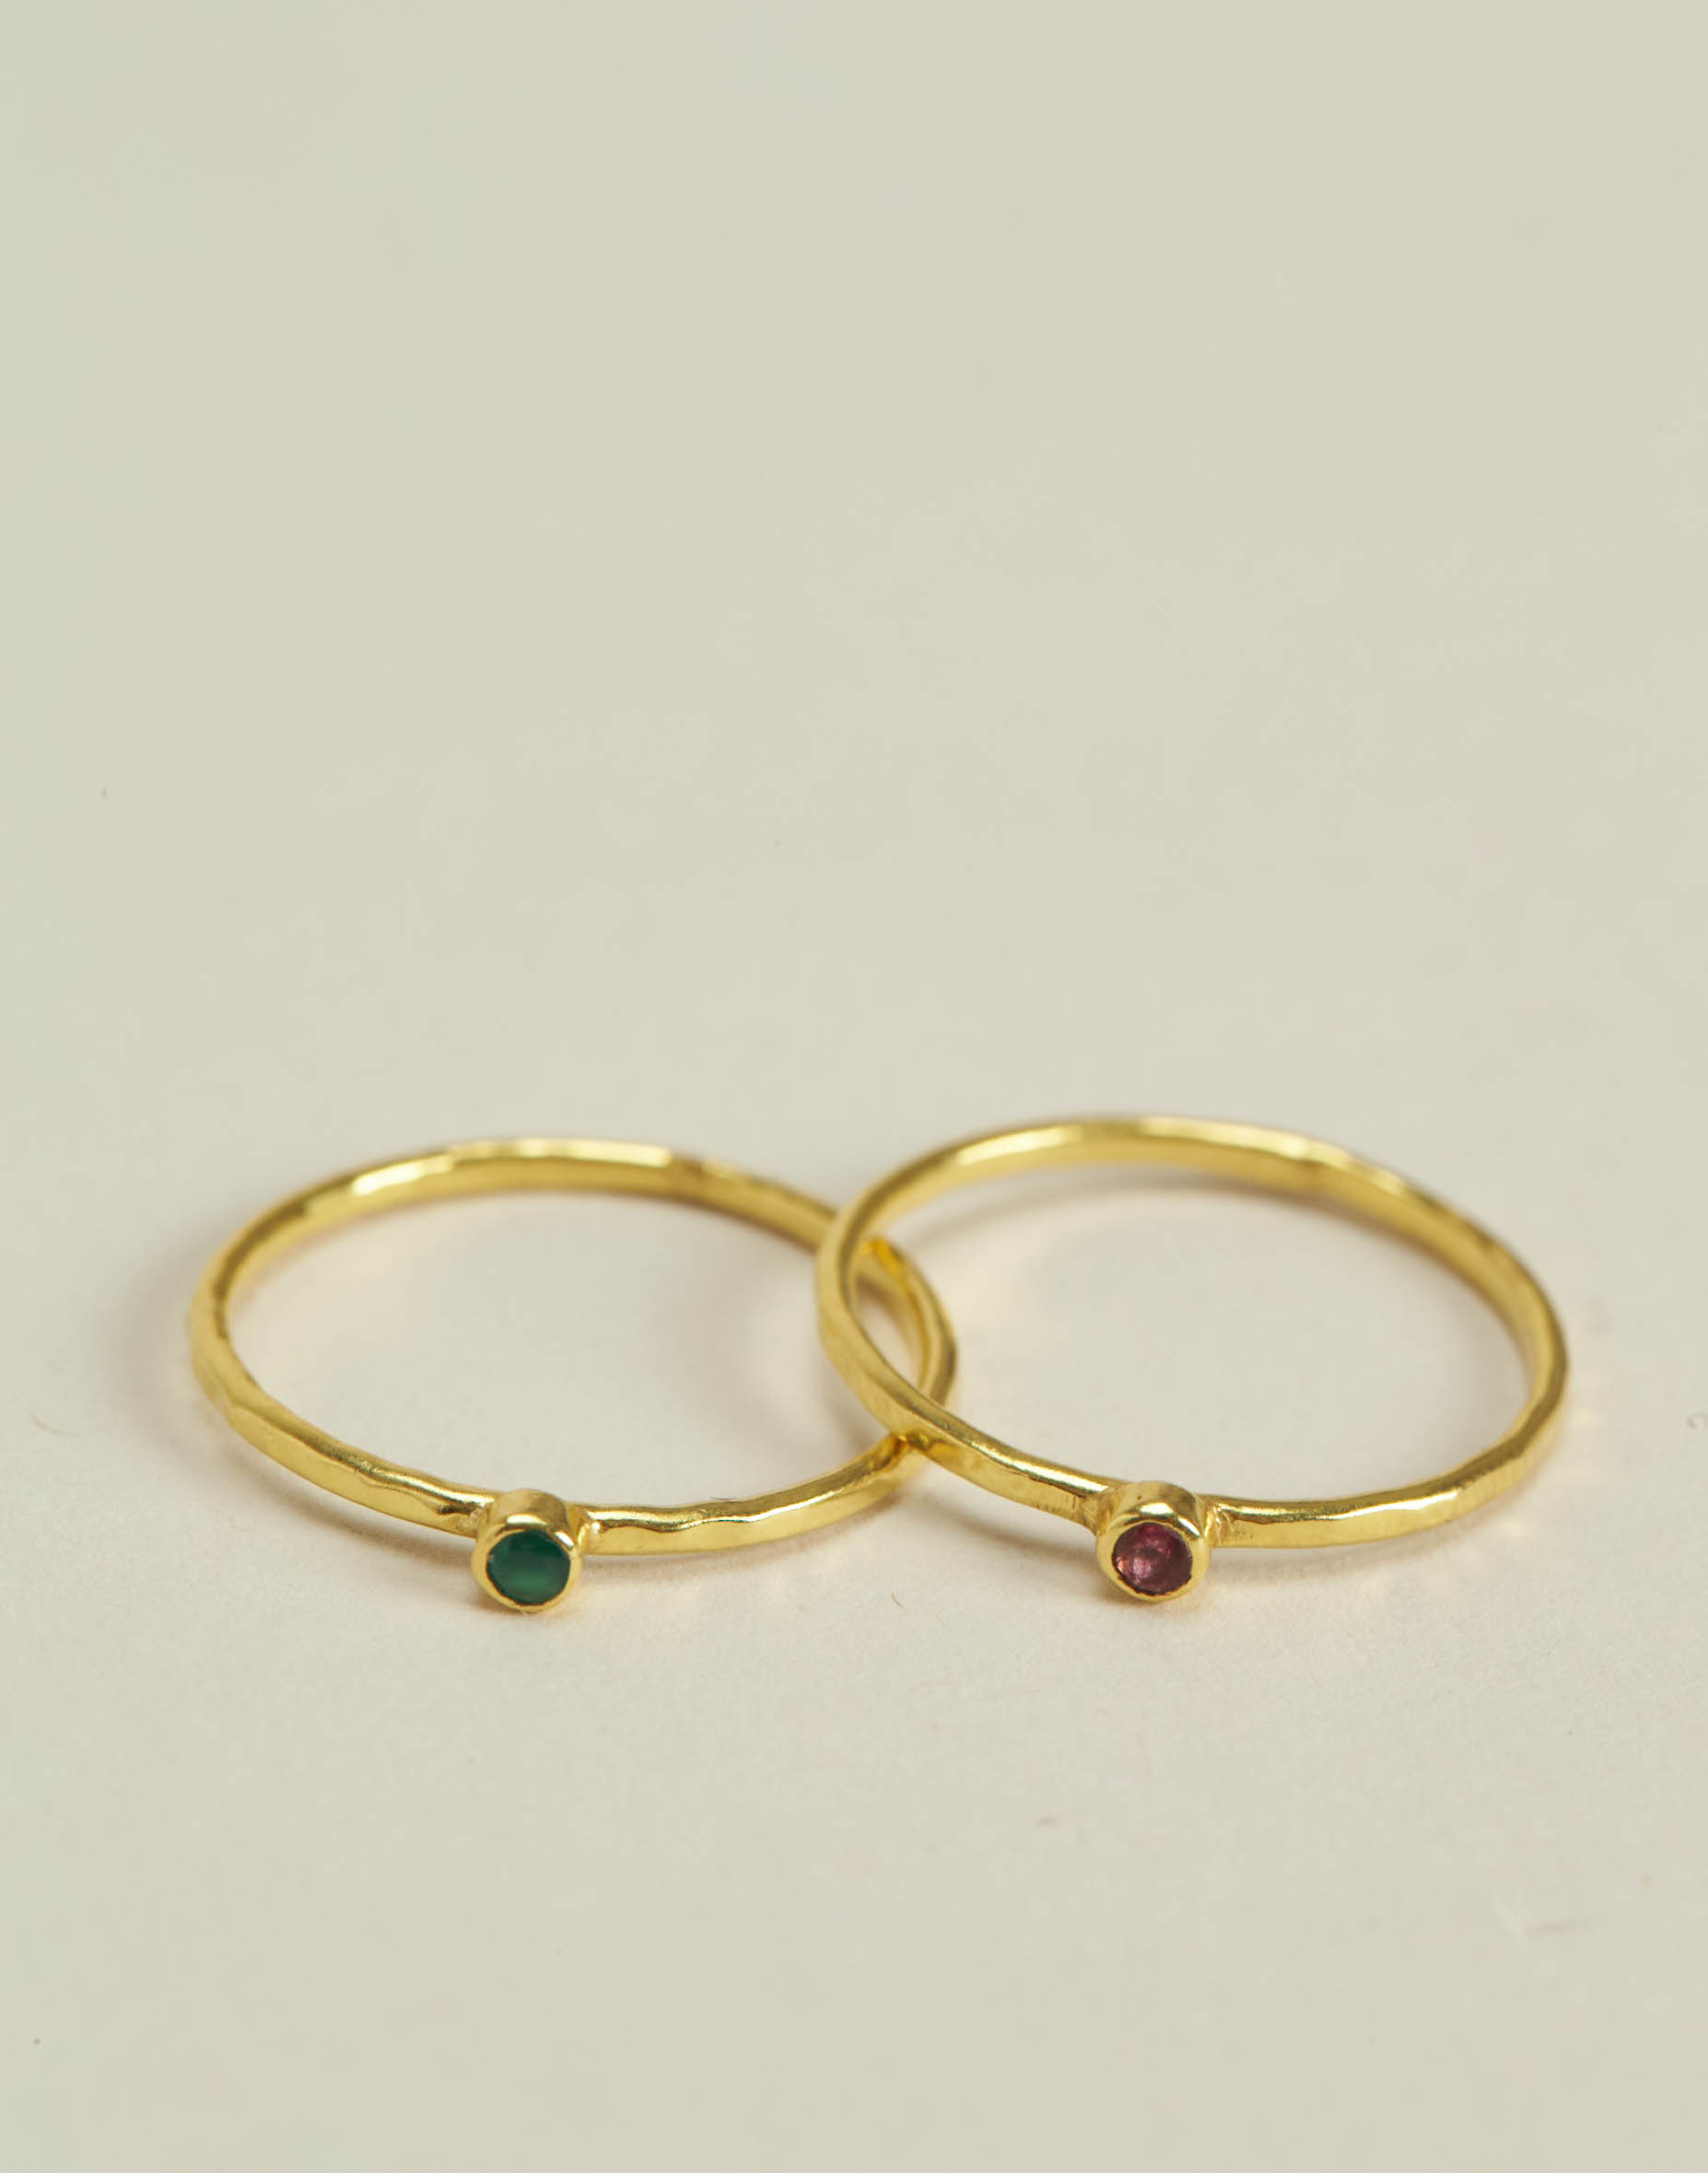 Set of 2 fine gold plated rings